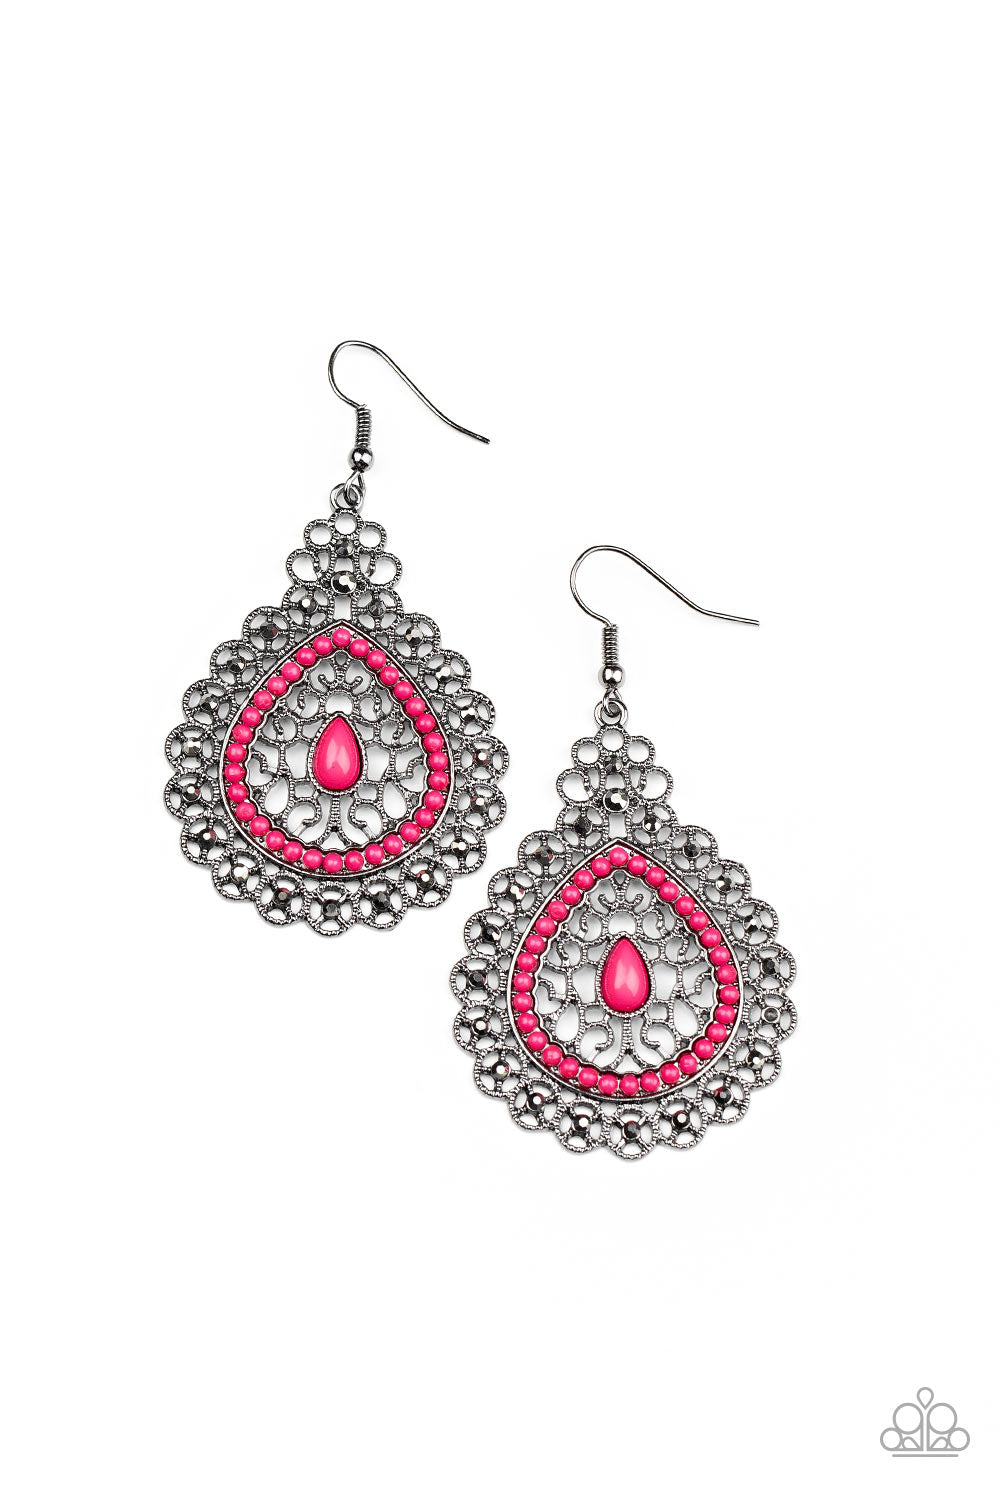 Carnival Courtesan Pink Earring